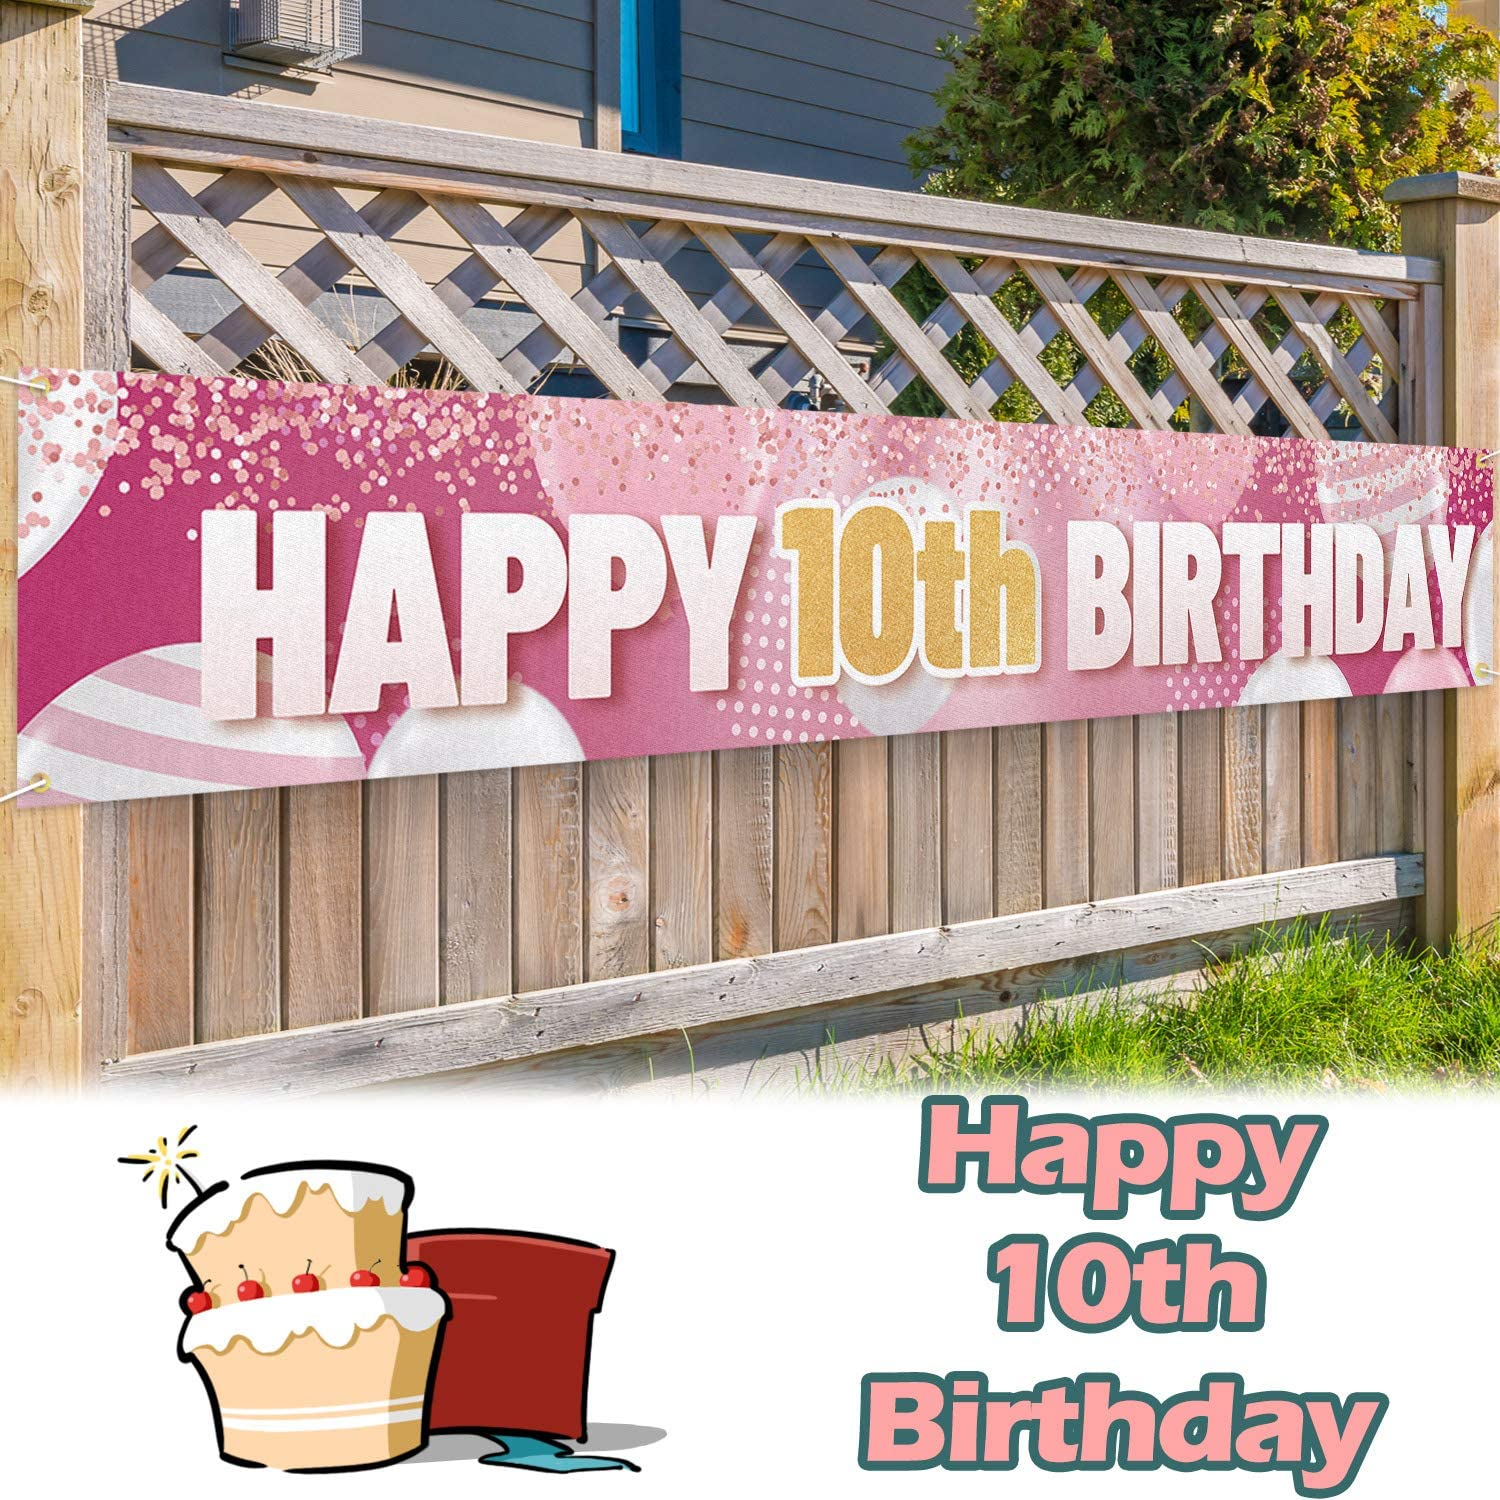 LINGPAR 9.8 x 1.6 ft Large Sign Happy 10th Birthday Banner Pink - Cheers to 10 Years Old Decor